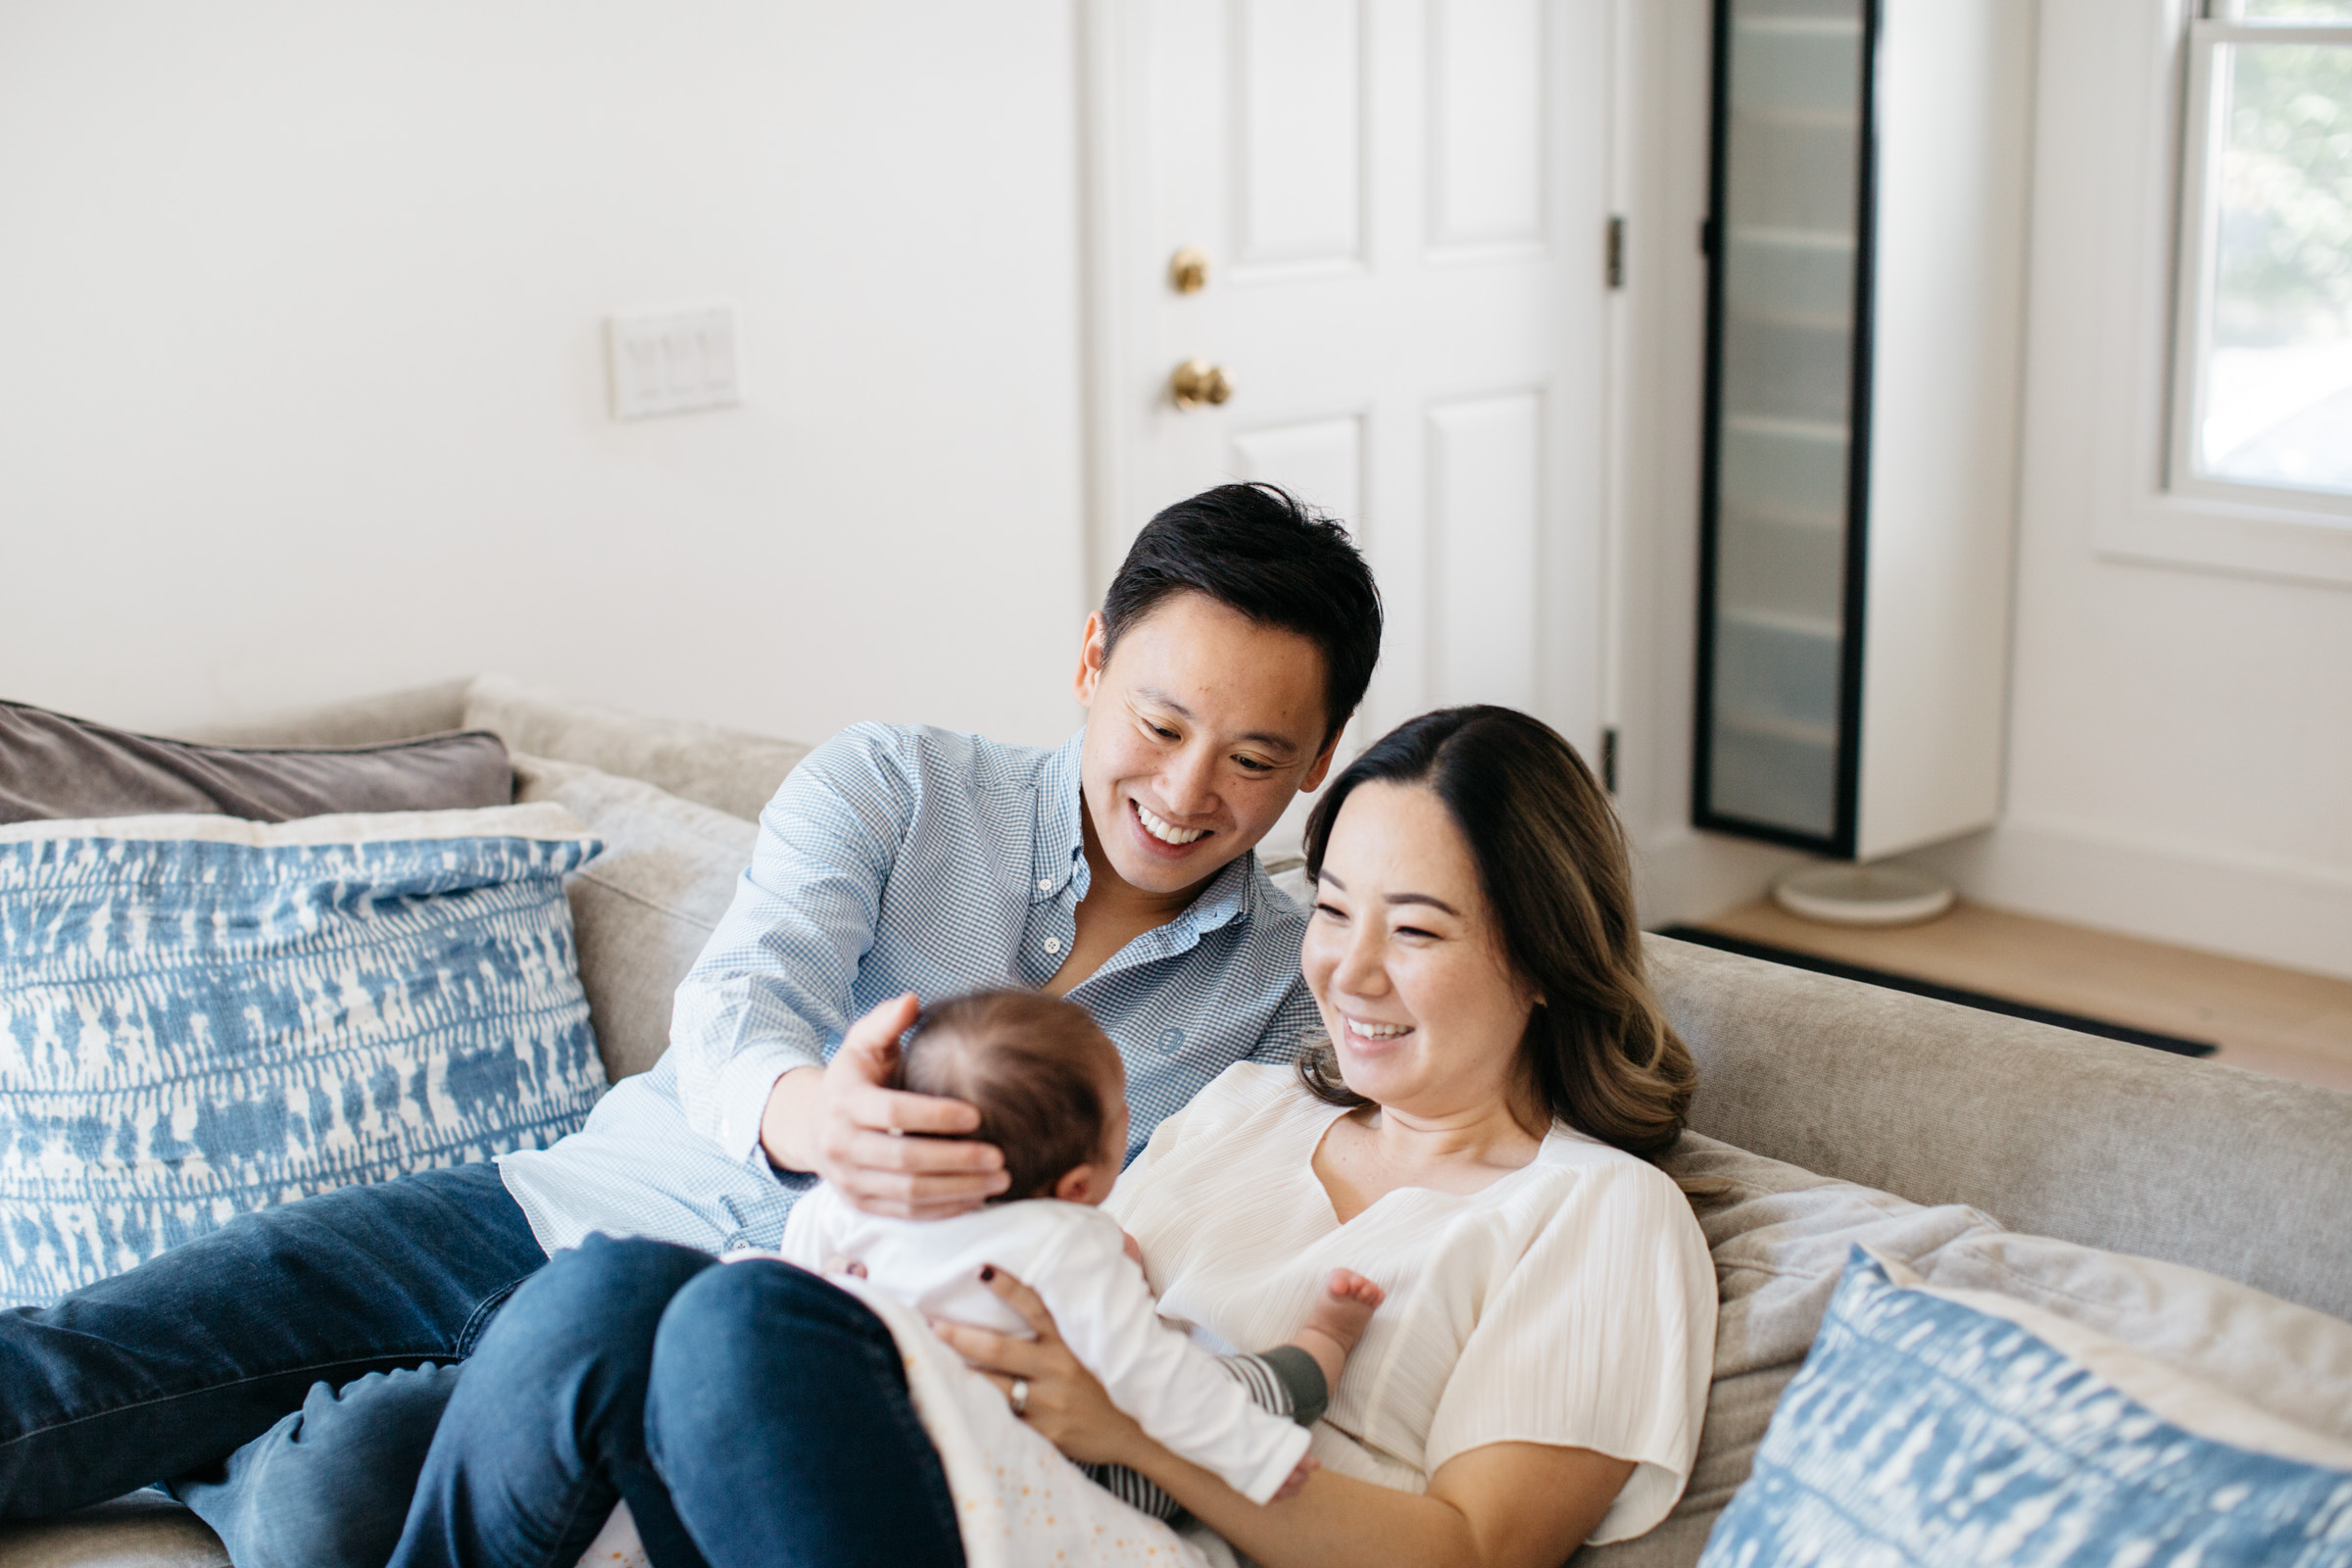 Fung-Family-documentary-lifestyle-photography-newborn-nyc-new-jersey-5.jpg